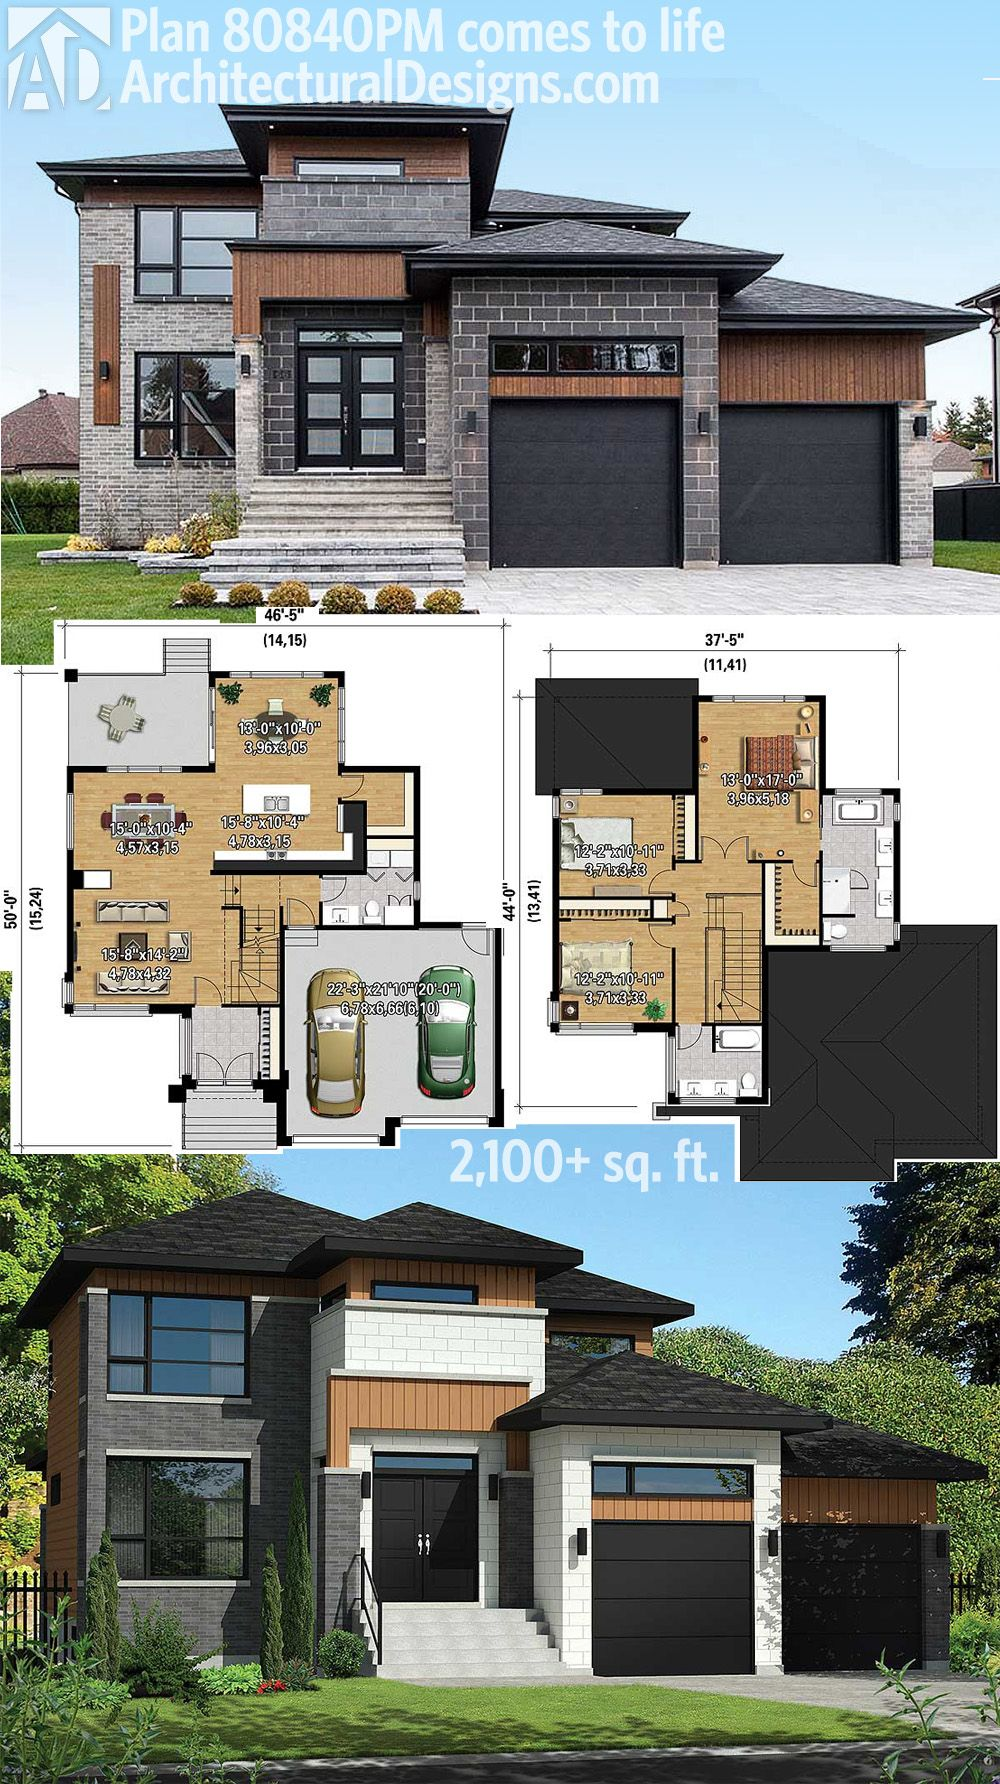 architectural designs modern house plan 80840pm gives you over 2100 square feet of living with 3 - Coastal House Plans